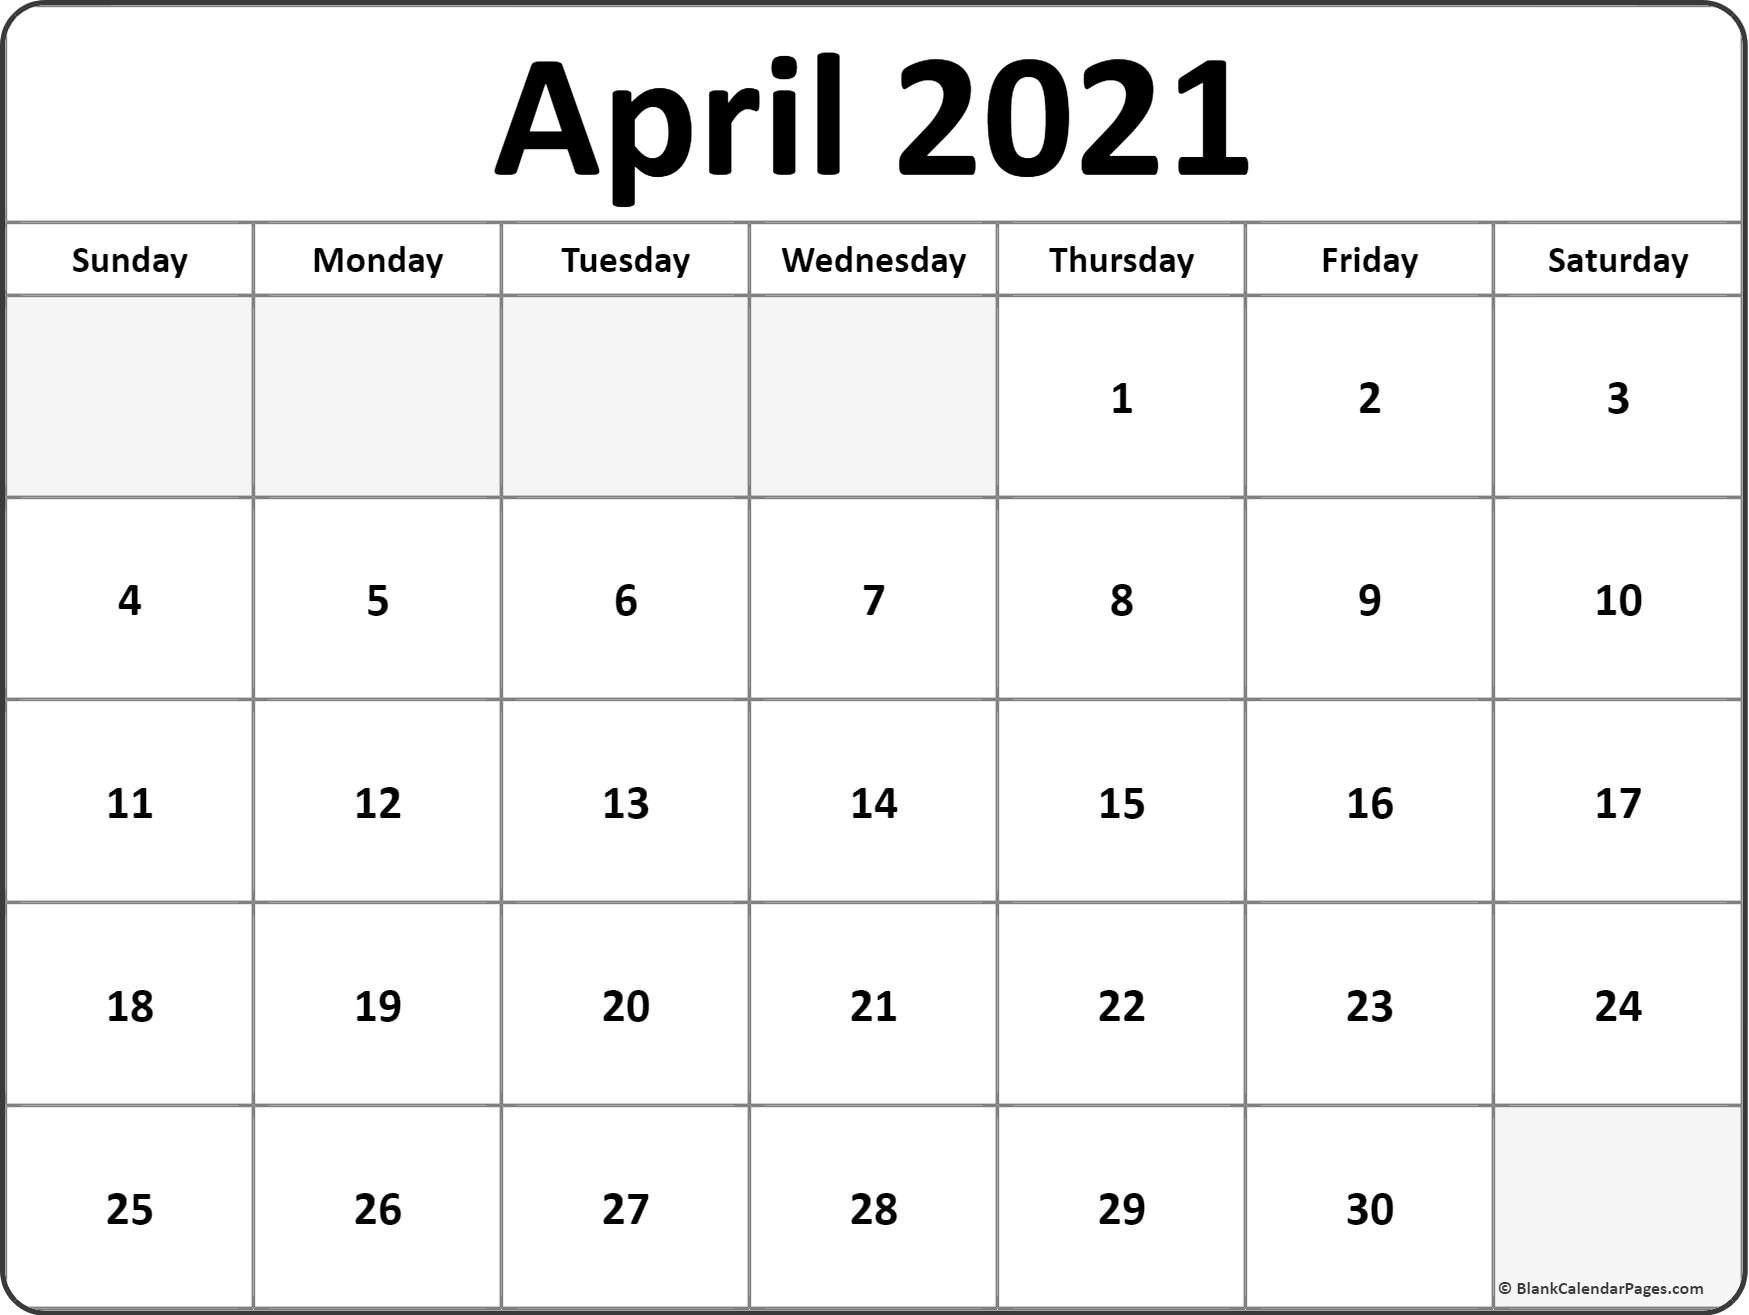 Free Monthly Calendar Print Out 2021 – Encouraged For You To